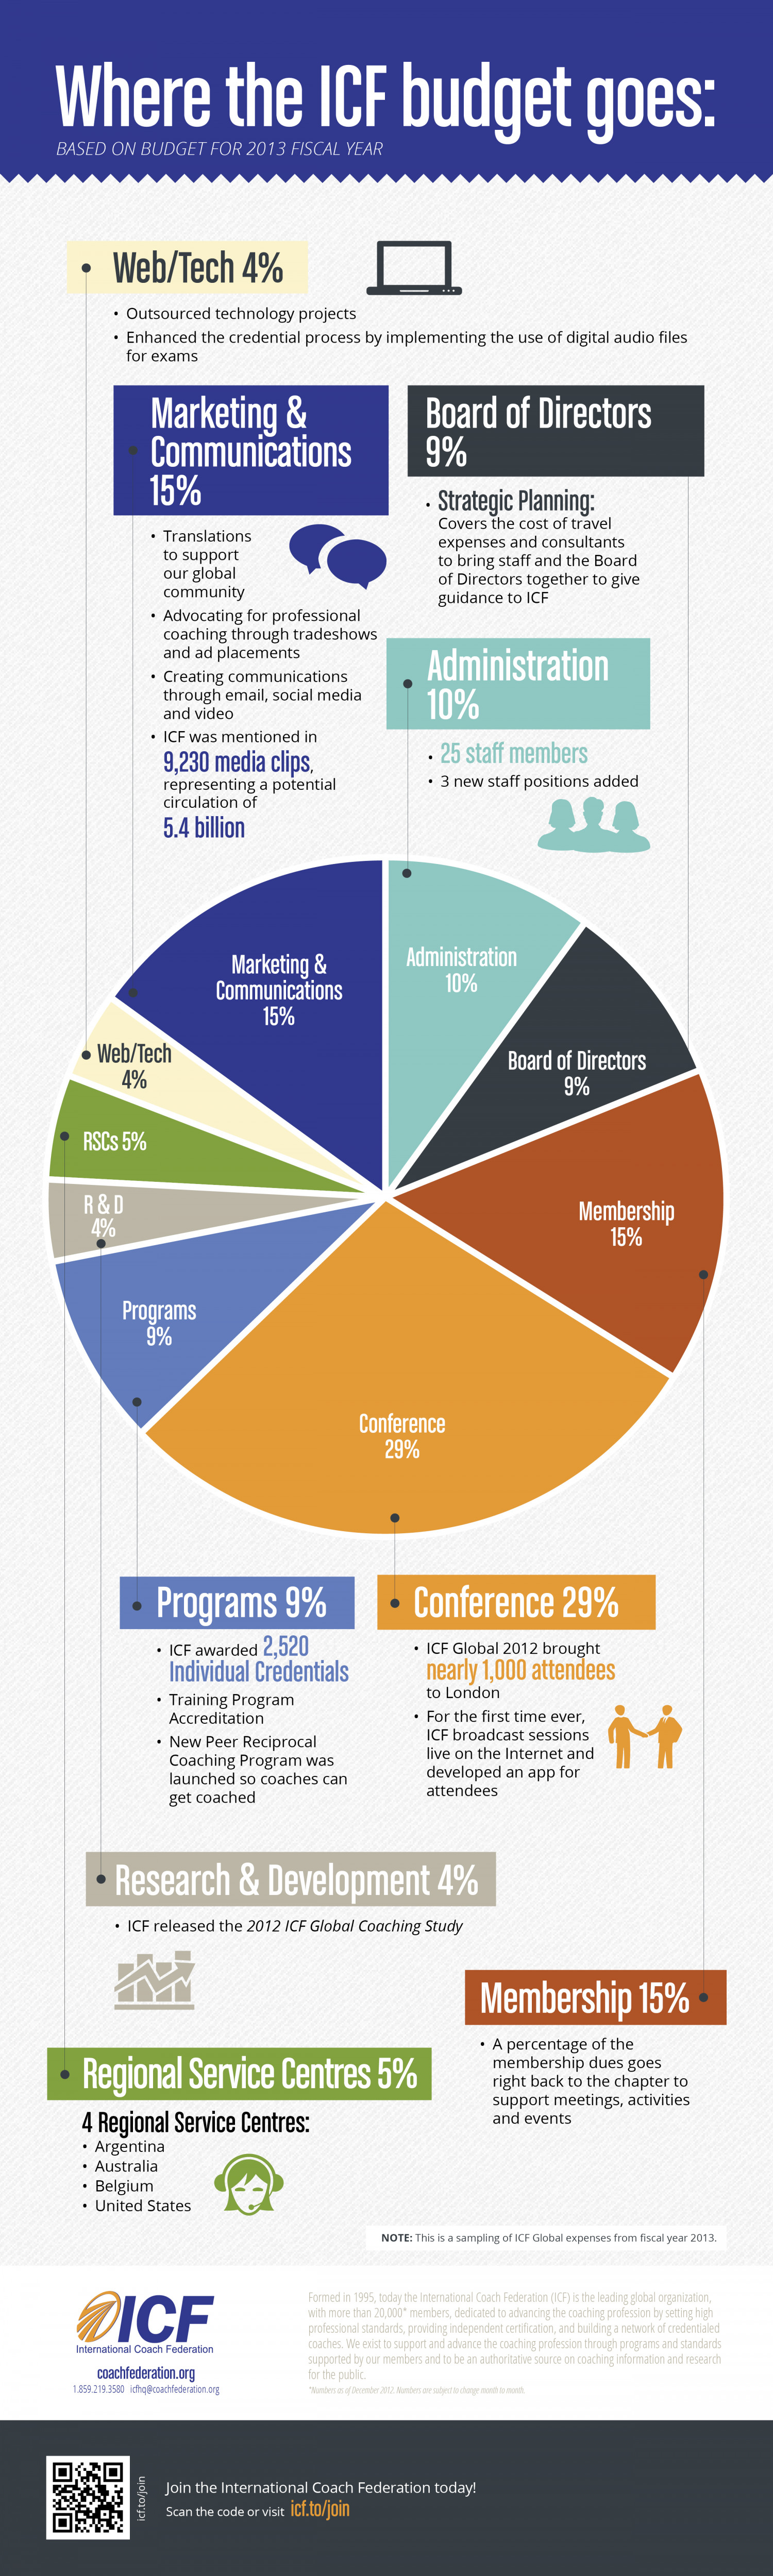 Where the ICF budget goes Infographic